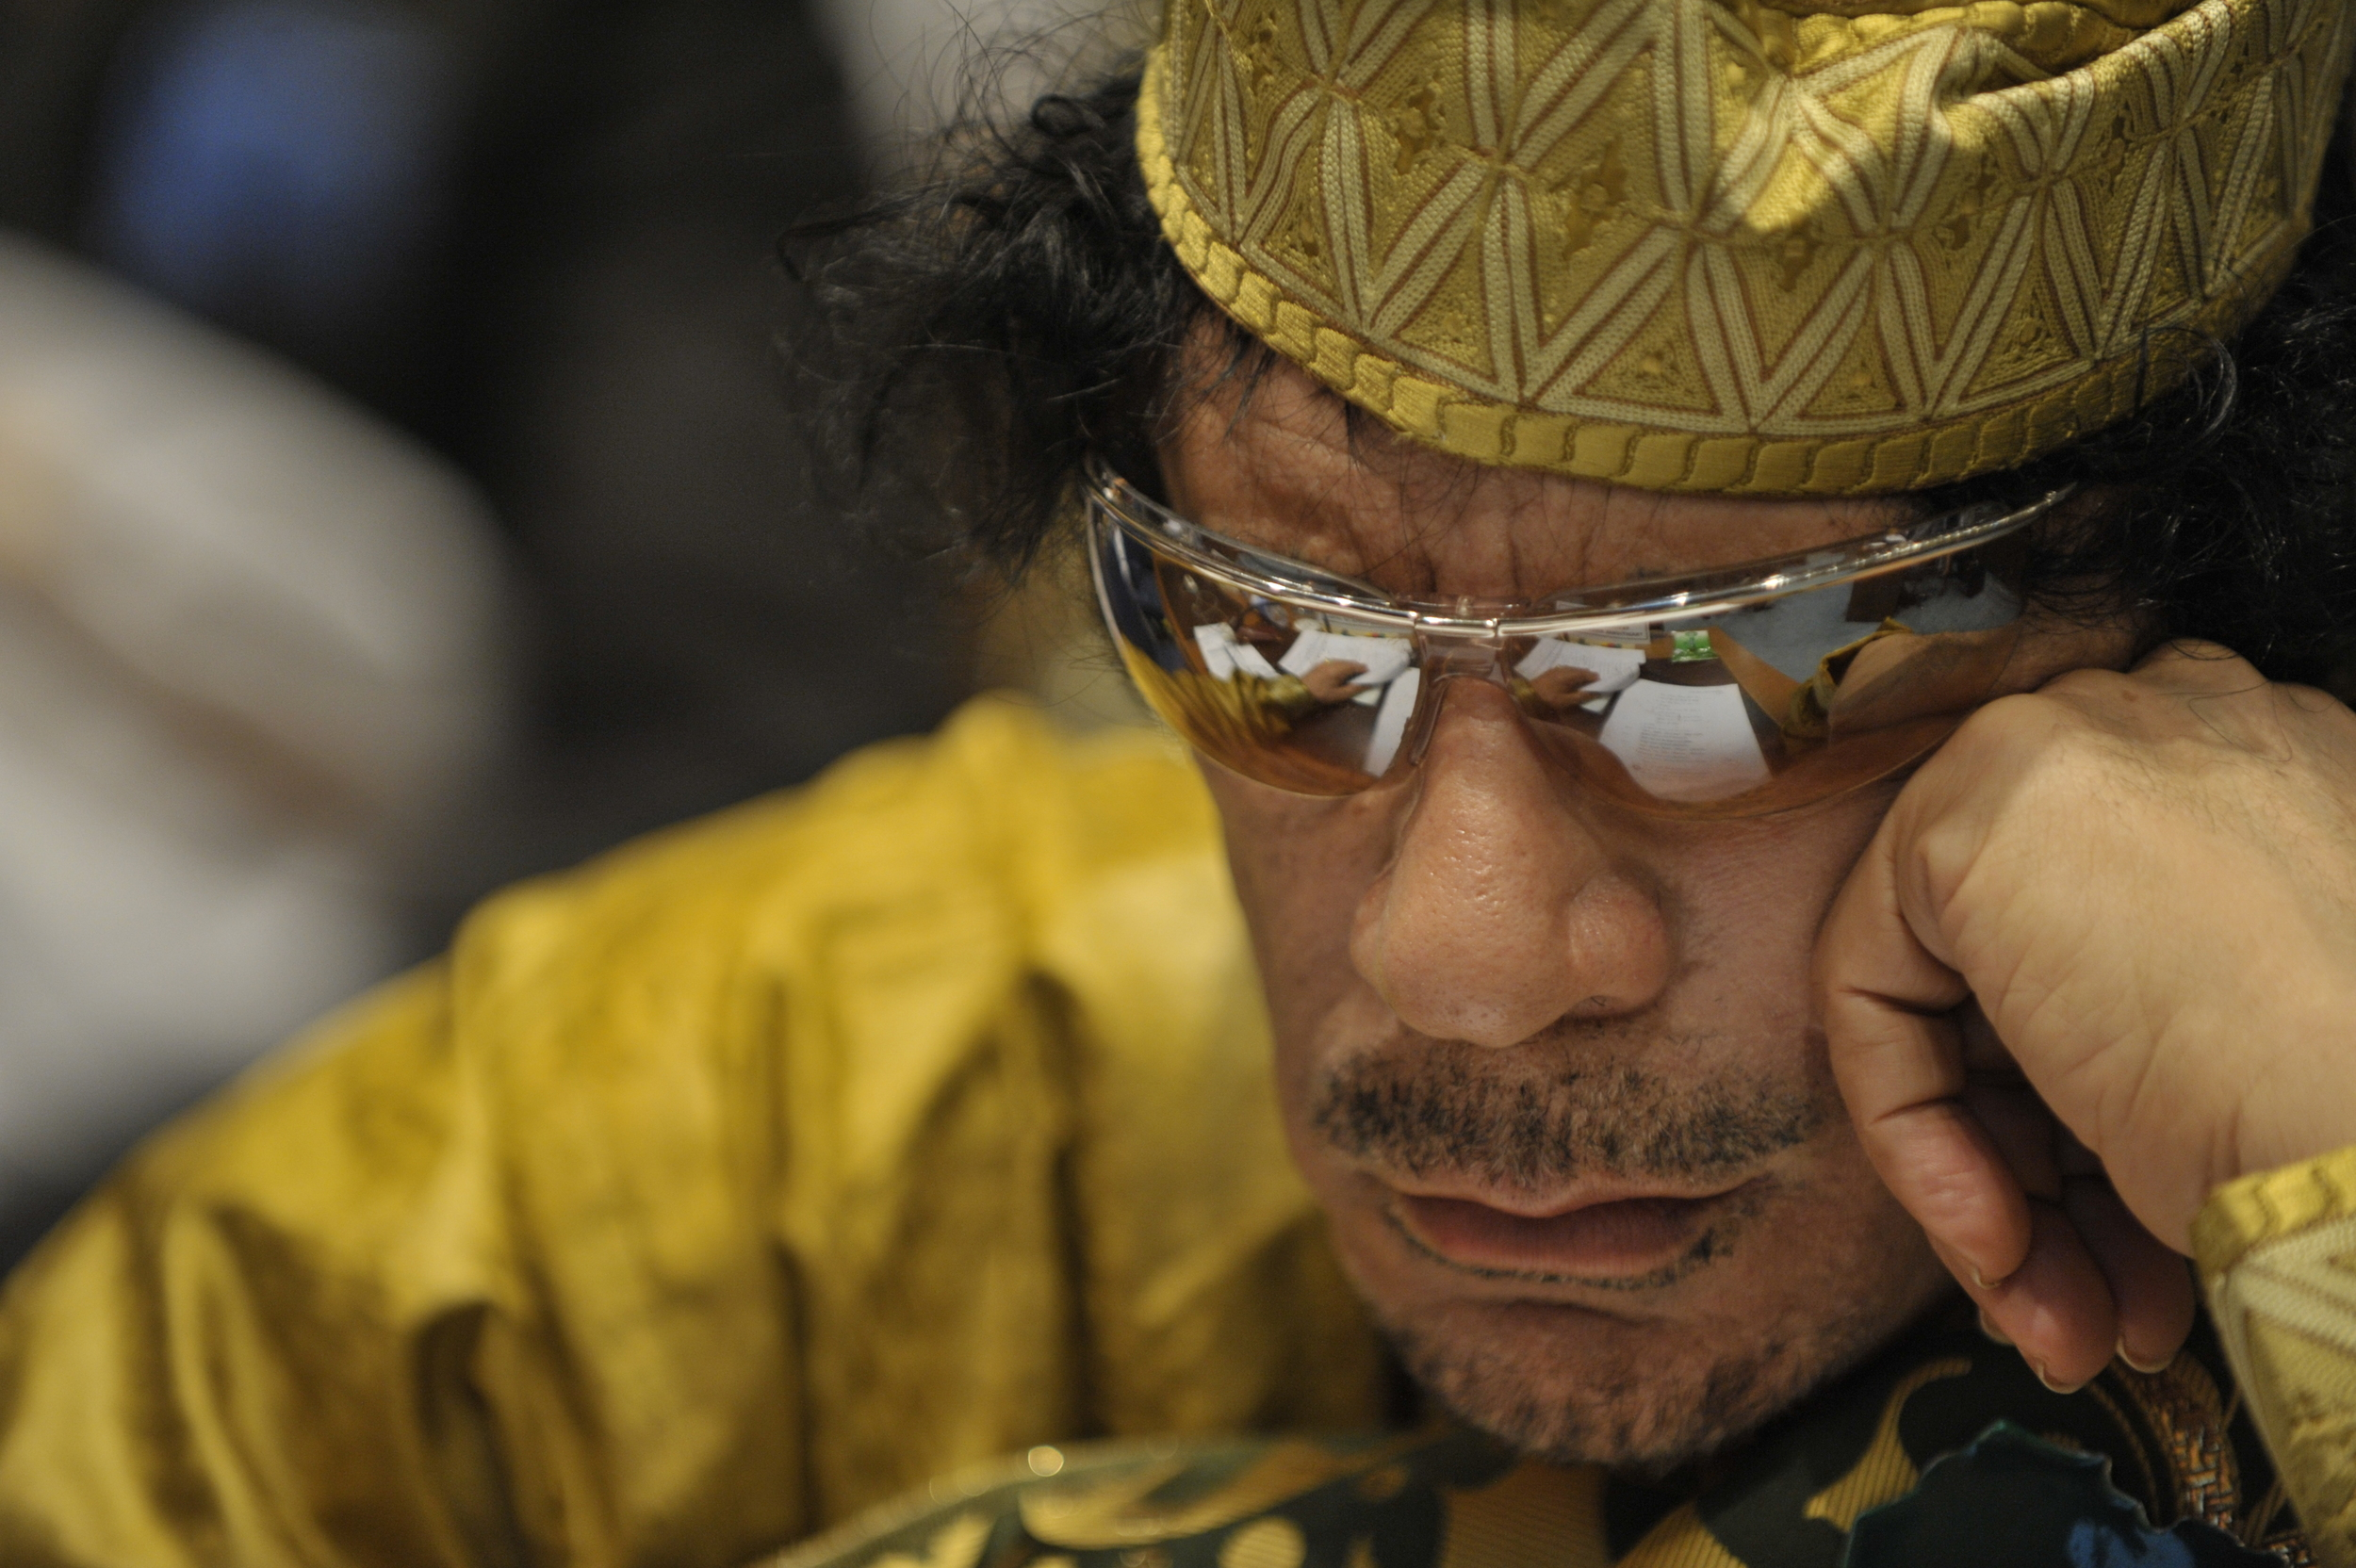 Muammar_al-Gaddafi,_12th_AU_Summit,_090202-N-0506A-324.jpg